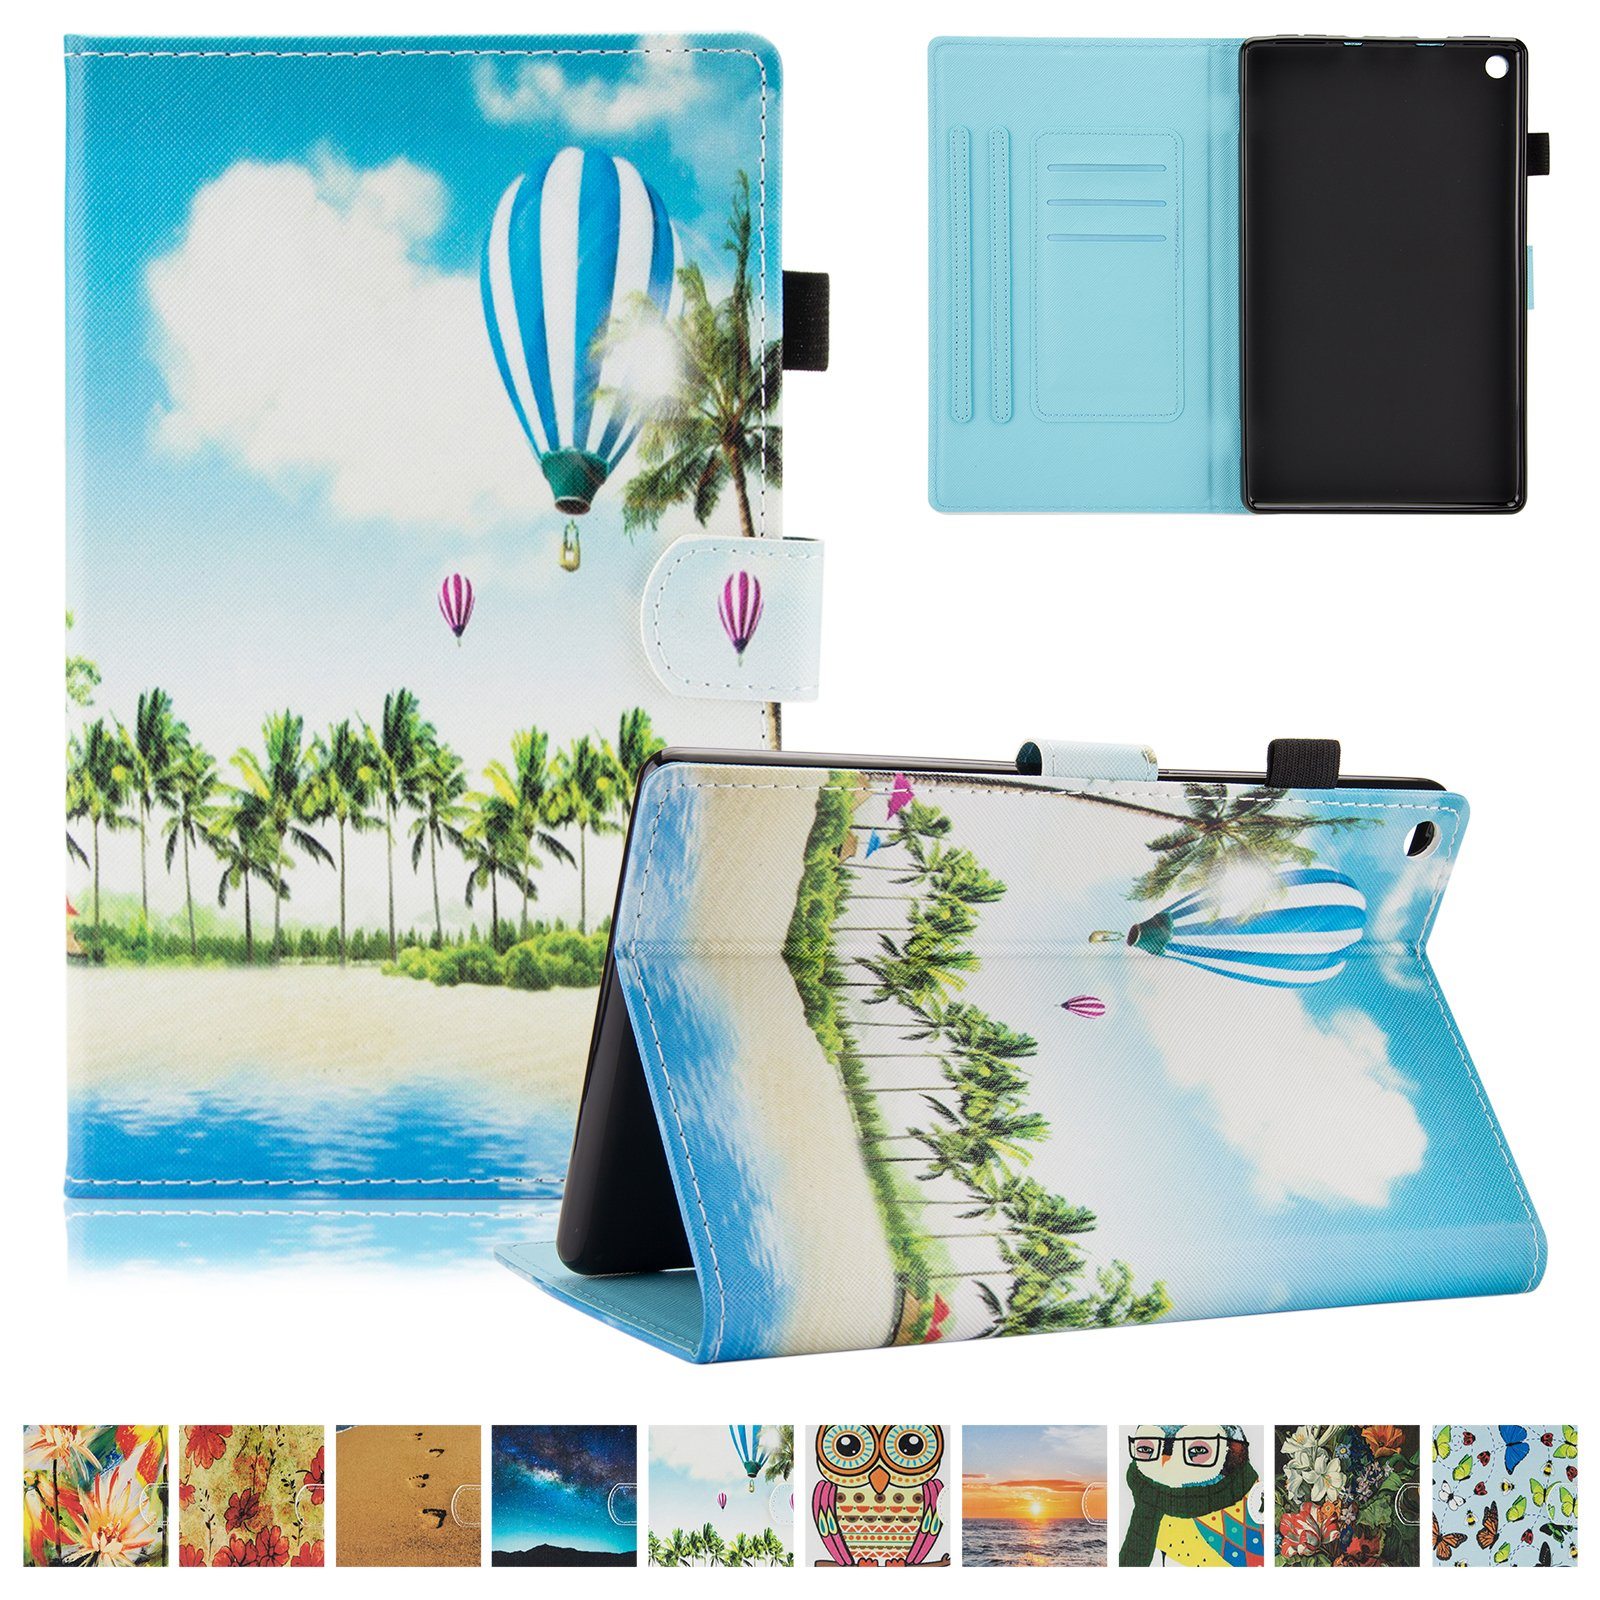 UUcovers Kindle Fire HD 8 Case,Slim Folio Stand Case with Auto Wake/Sleep&[Pen Slot] Smart Cover for Amazon Kindle Fire HD 8 7th Gen 2017 Release & 6th Gen Release 2016 with Free Stylus,Balloon